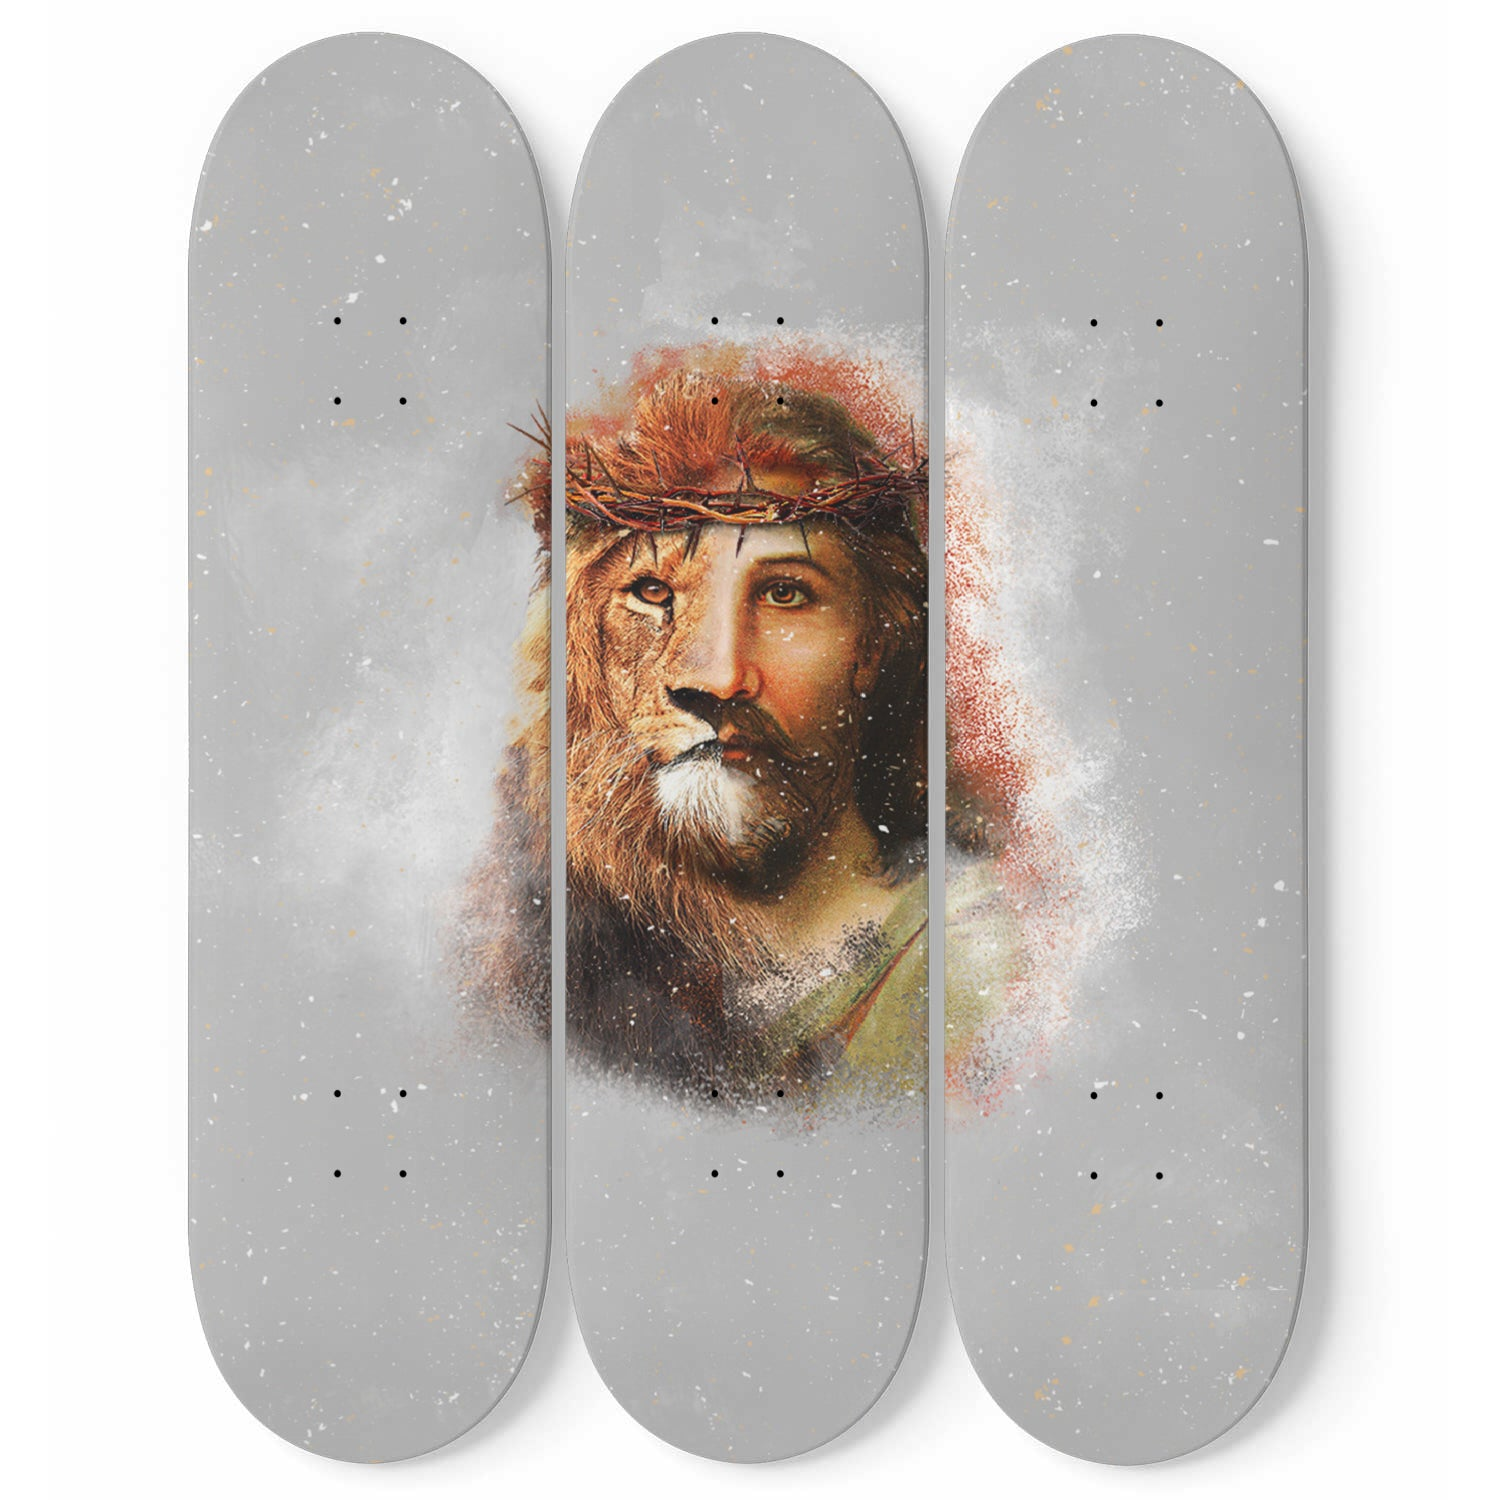 VIRA Awesome 3 Skateboard Wall Art For Jesus Lovers